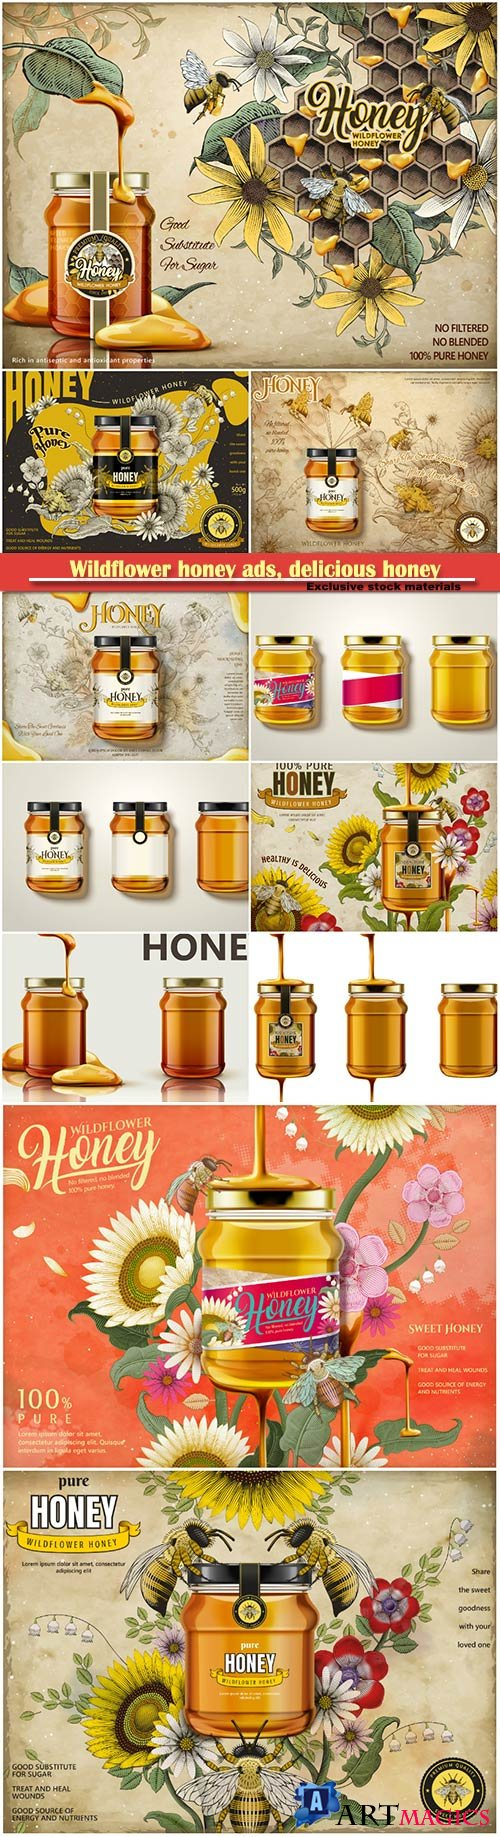 Wildflower honey ads, delicious honey dripping from top with glass jar in 3d illustration, retro flowers elements in etching shading style